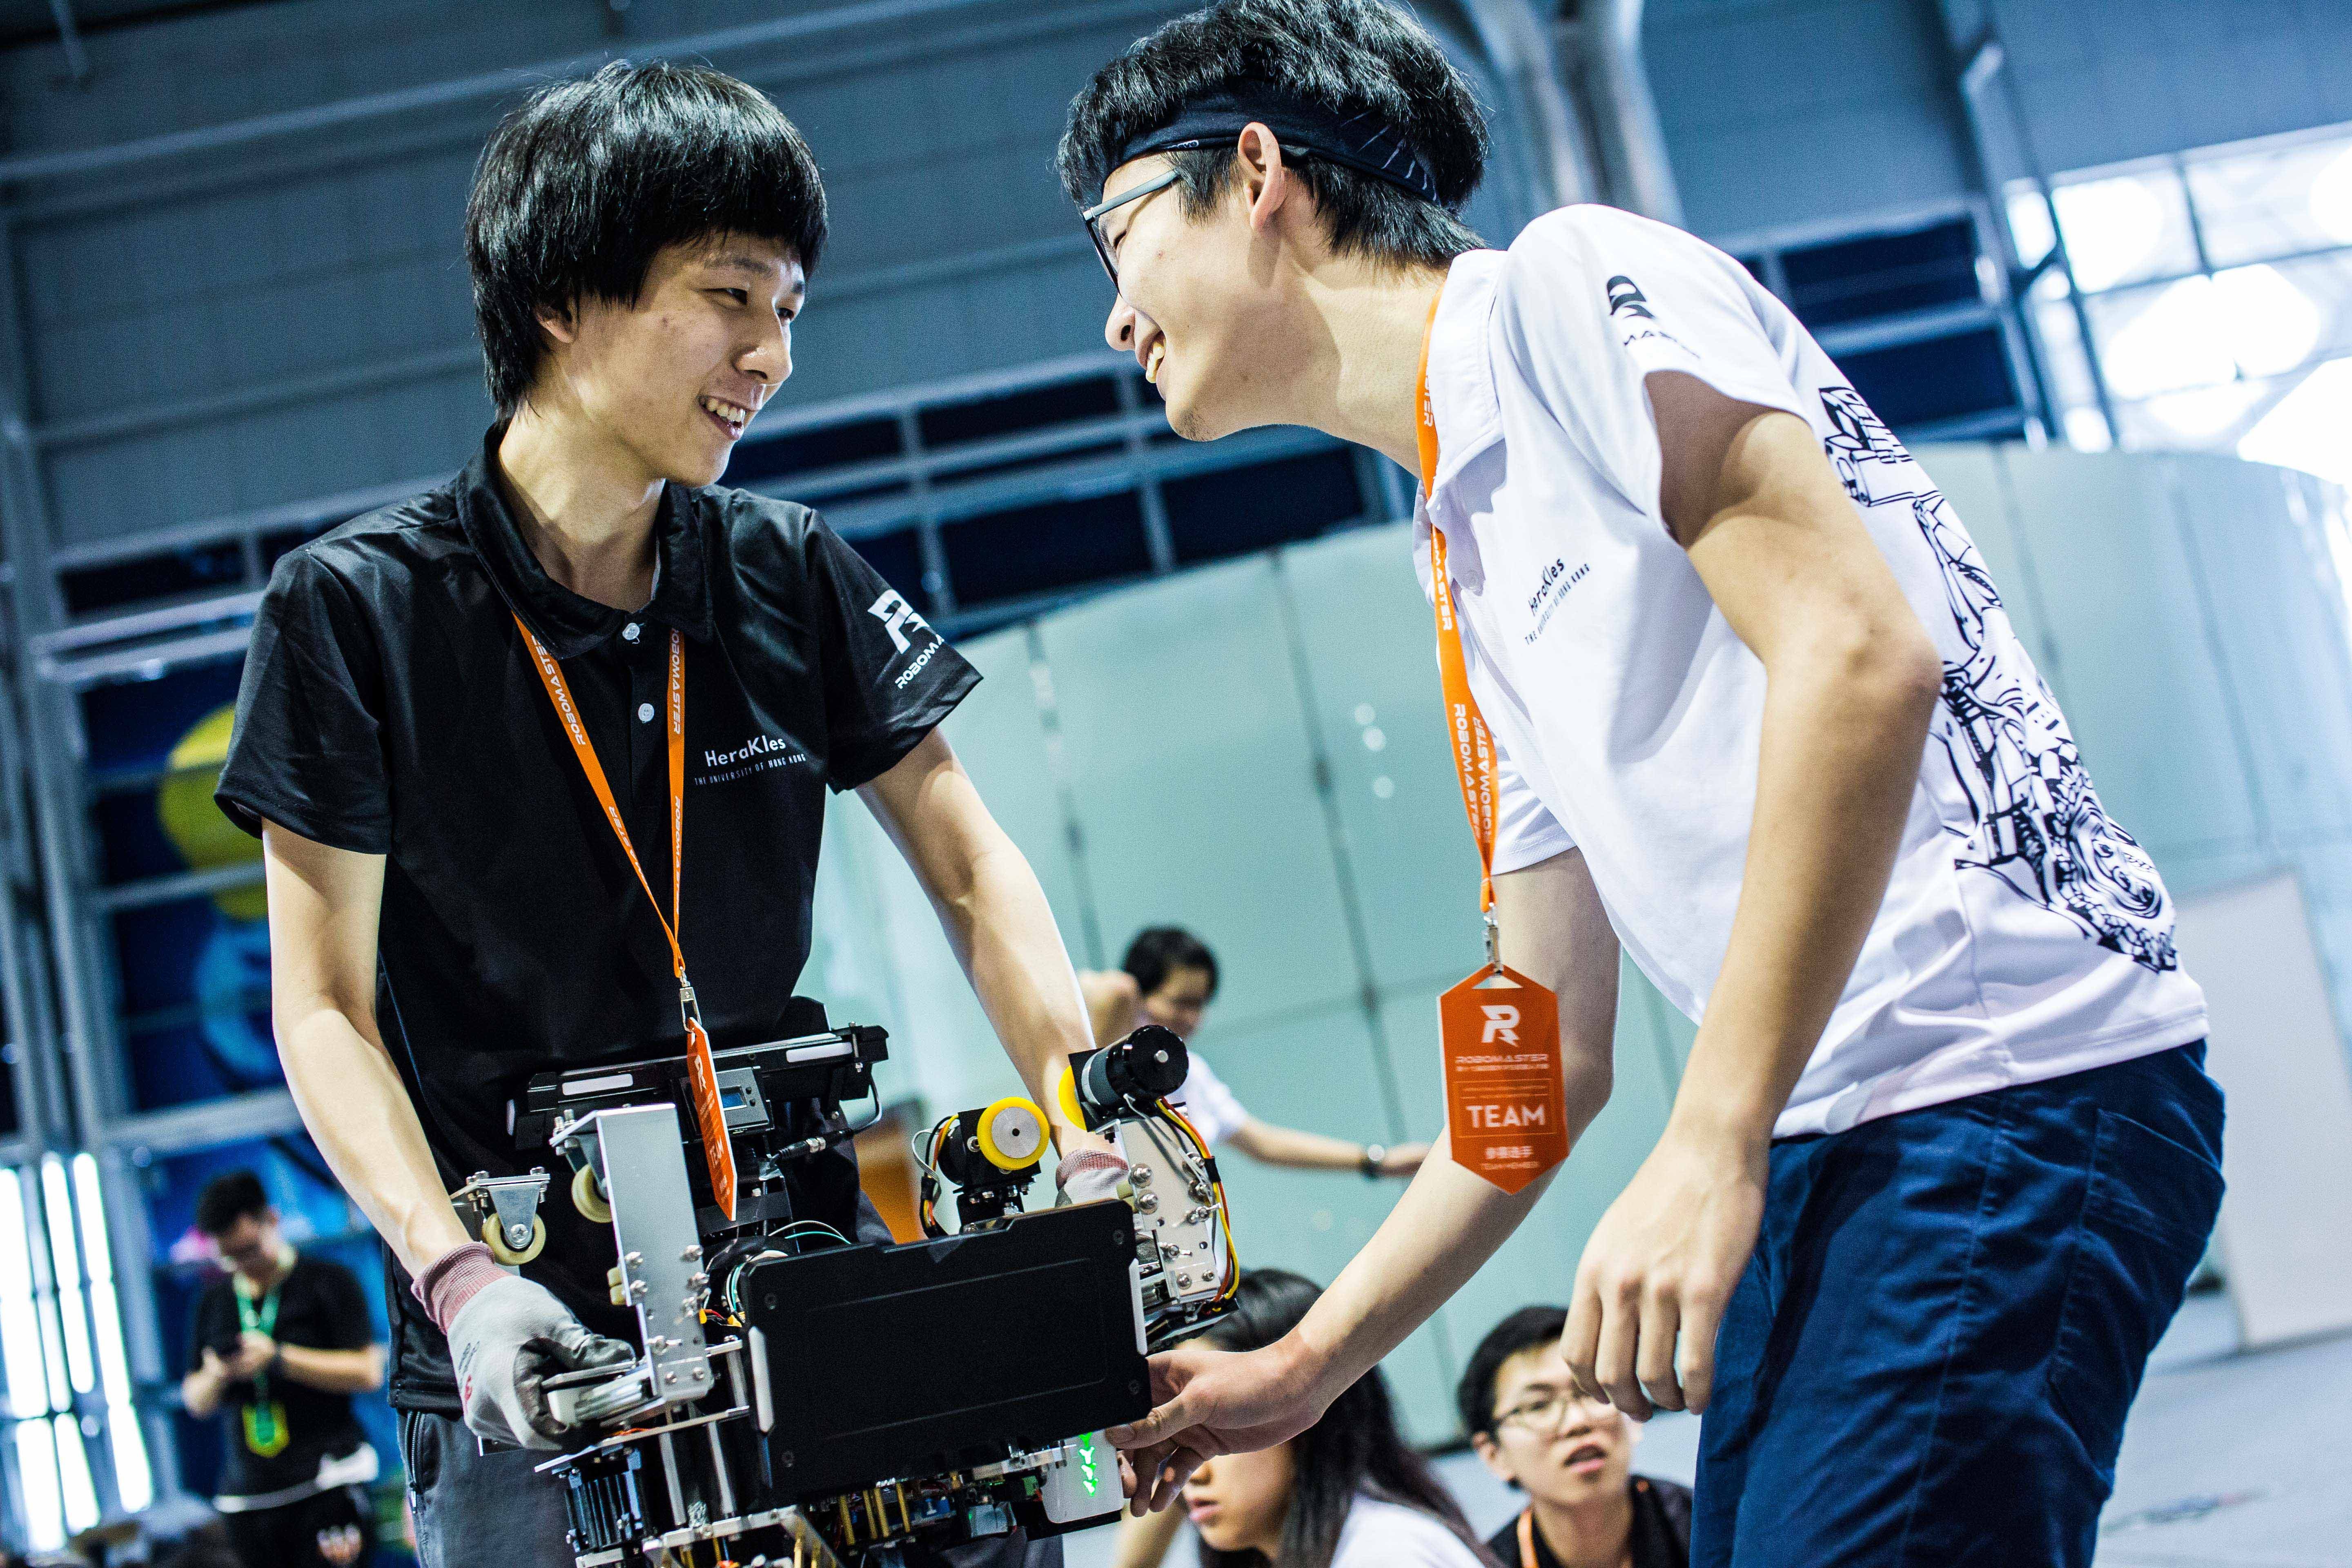 Robomaster 2019 hosted in the Computer Science department, supervised by Dr. Kenneth Wong (CS)